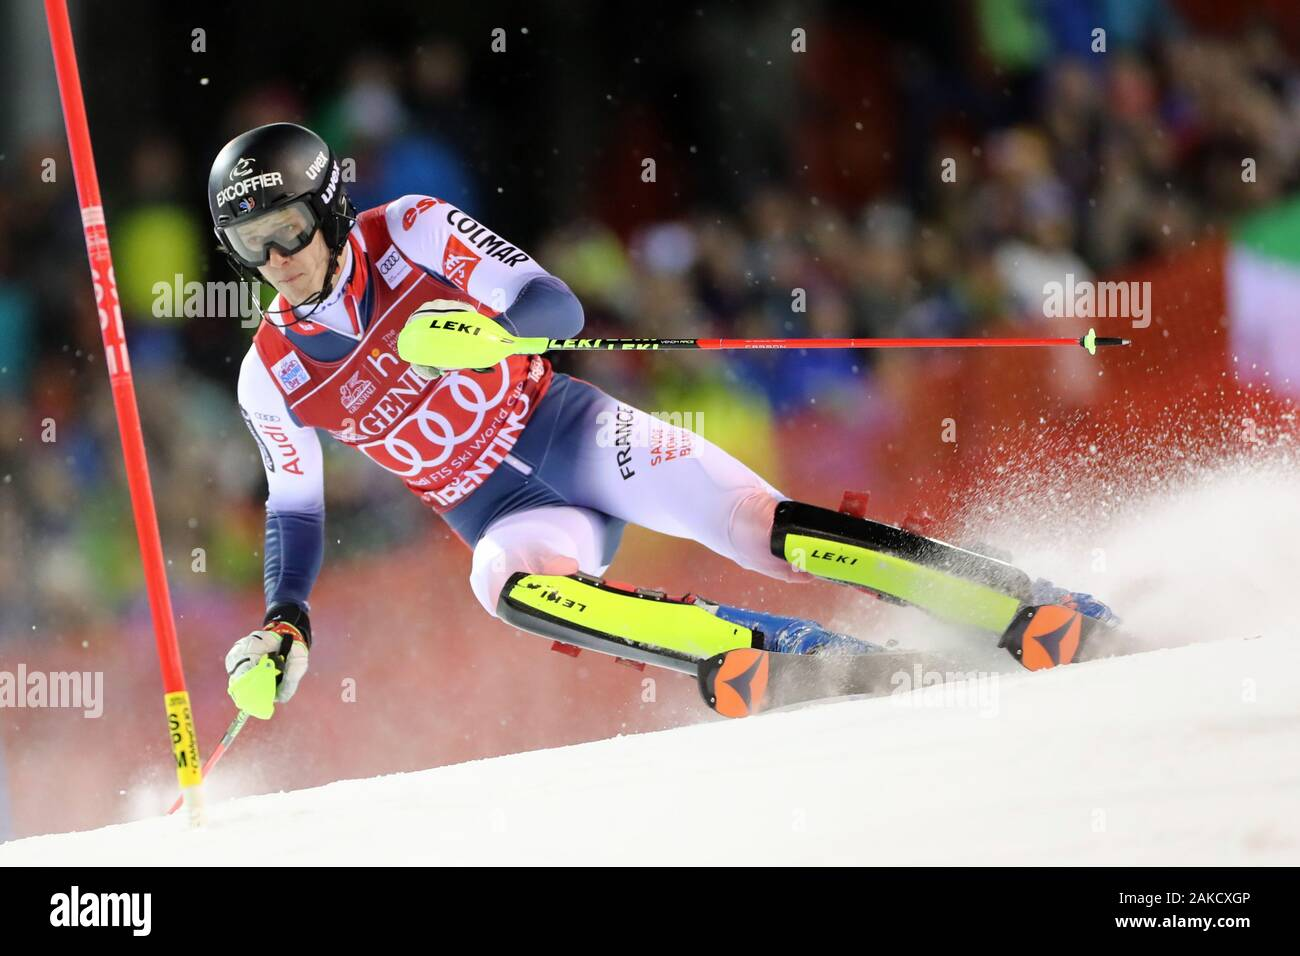 Madonna di Campiglio, Italy. 8th Jan 2020. FIS Alpine Ski World Cup Men's Night Slalom in Madonna di Campiglio, Italy on January 8, 2020, Clement Noel (FRA)- Editorial Use Credit: Action Plus Sports Images/Alamy Live News Stock Photo